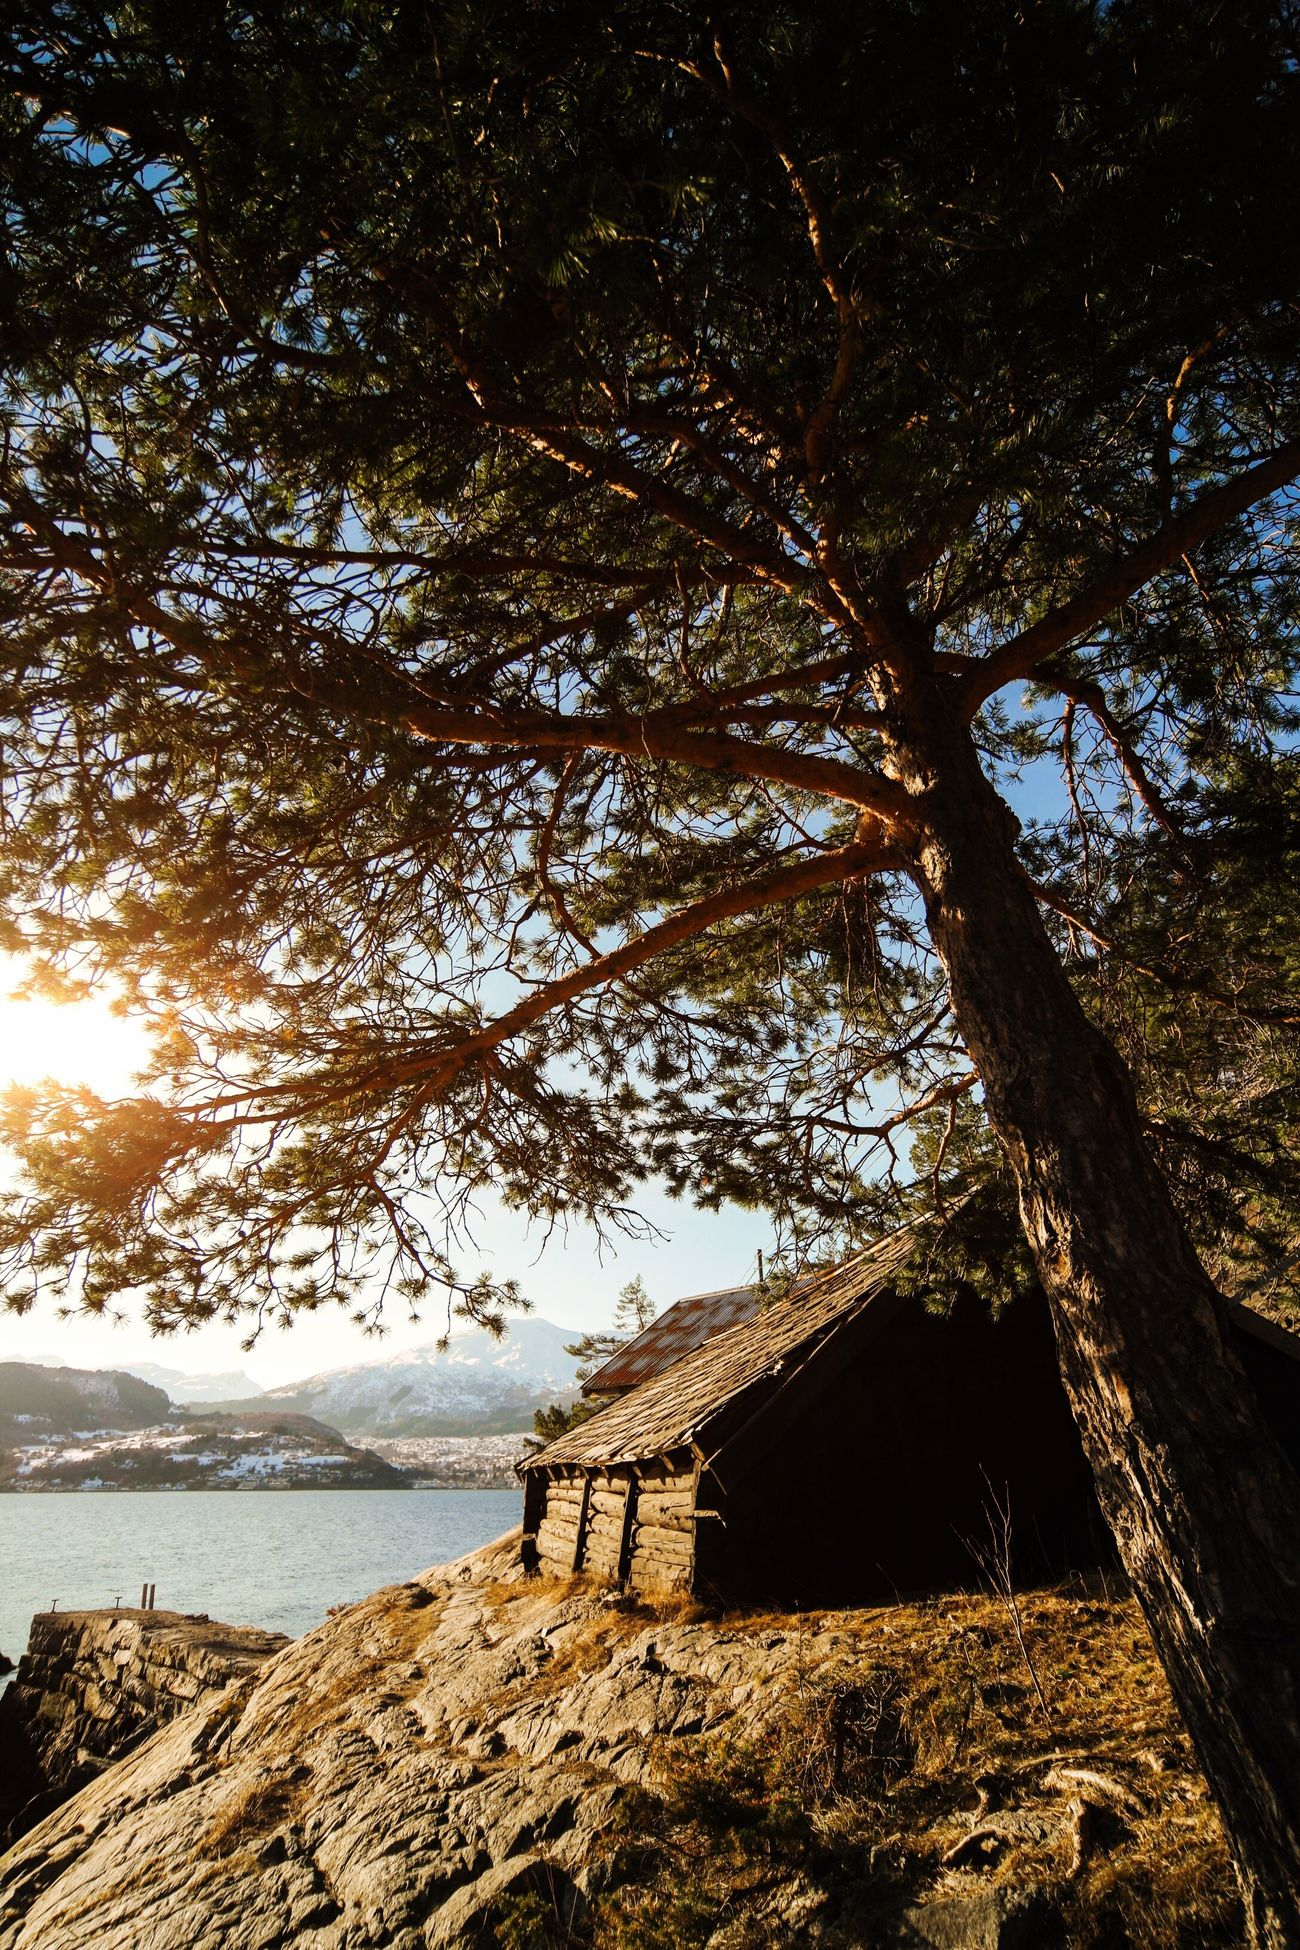 Summer Landscape Summertime Travel Feel 43 Golden Moments Adventure Summer Views Sunset Mountains Cottage Norway Tree Trees Lake Lake View Lakeshore